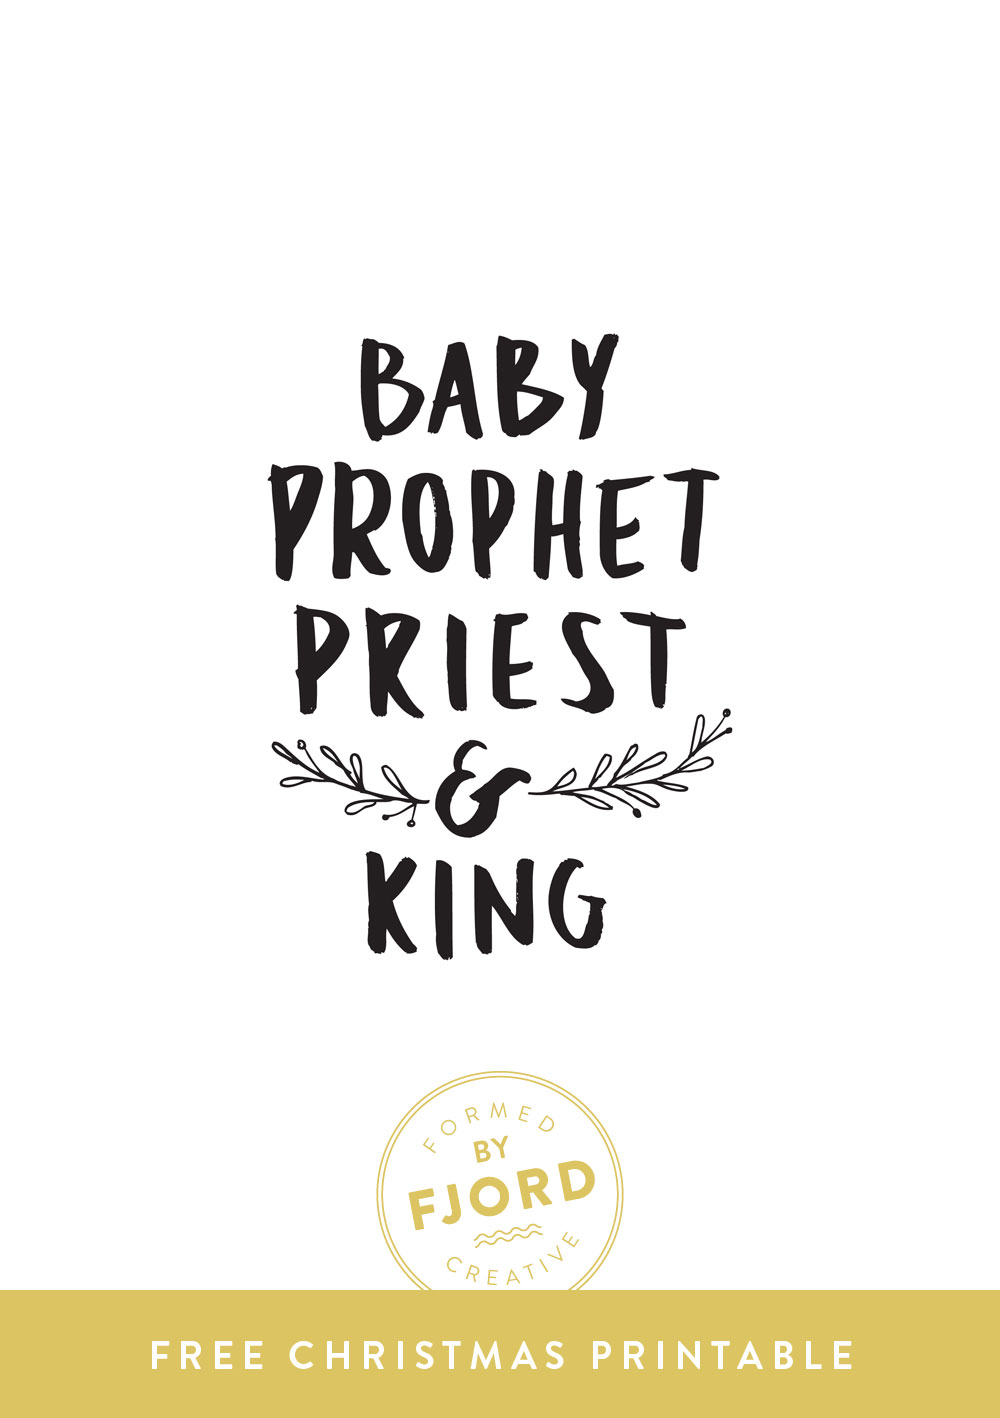 Free Christmas Printable by Fjord Creative // Baby, Prophet, Priest and King